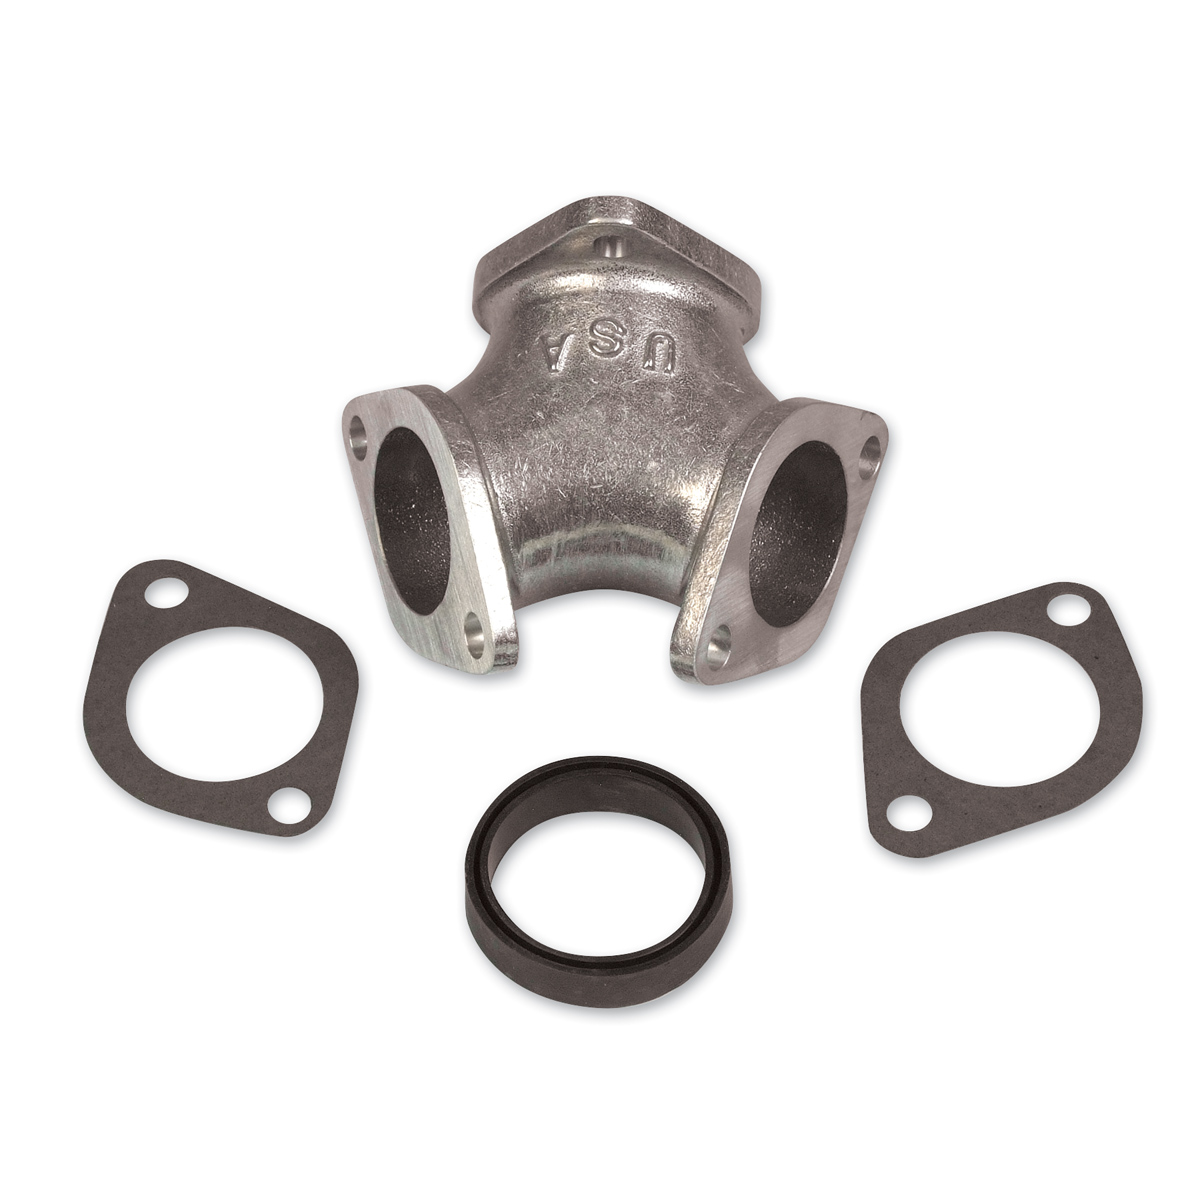 Genuine James Intake Manifold Seal Kit